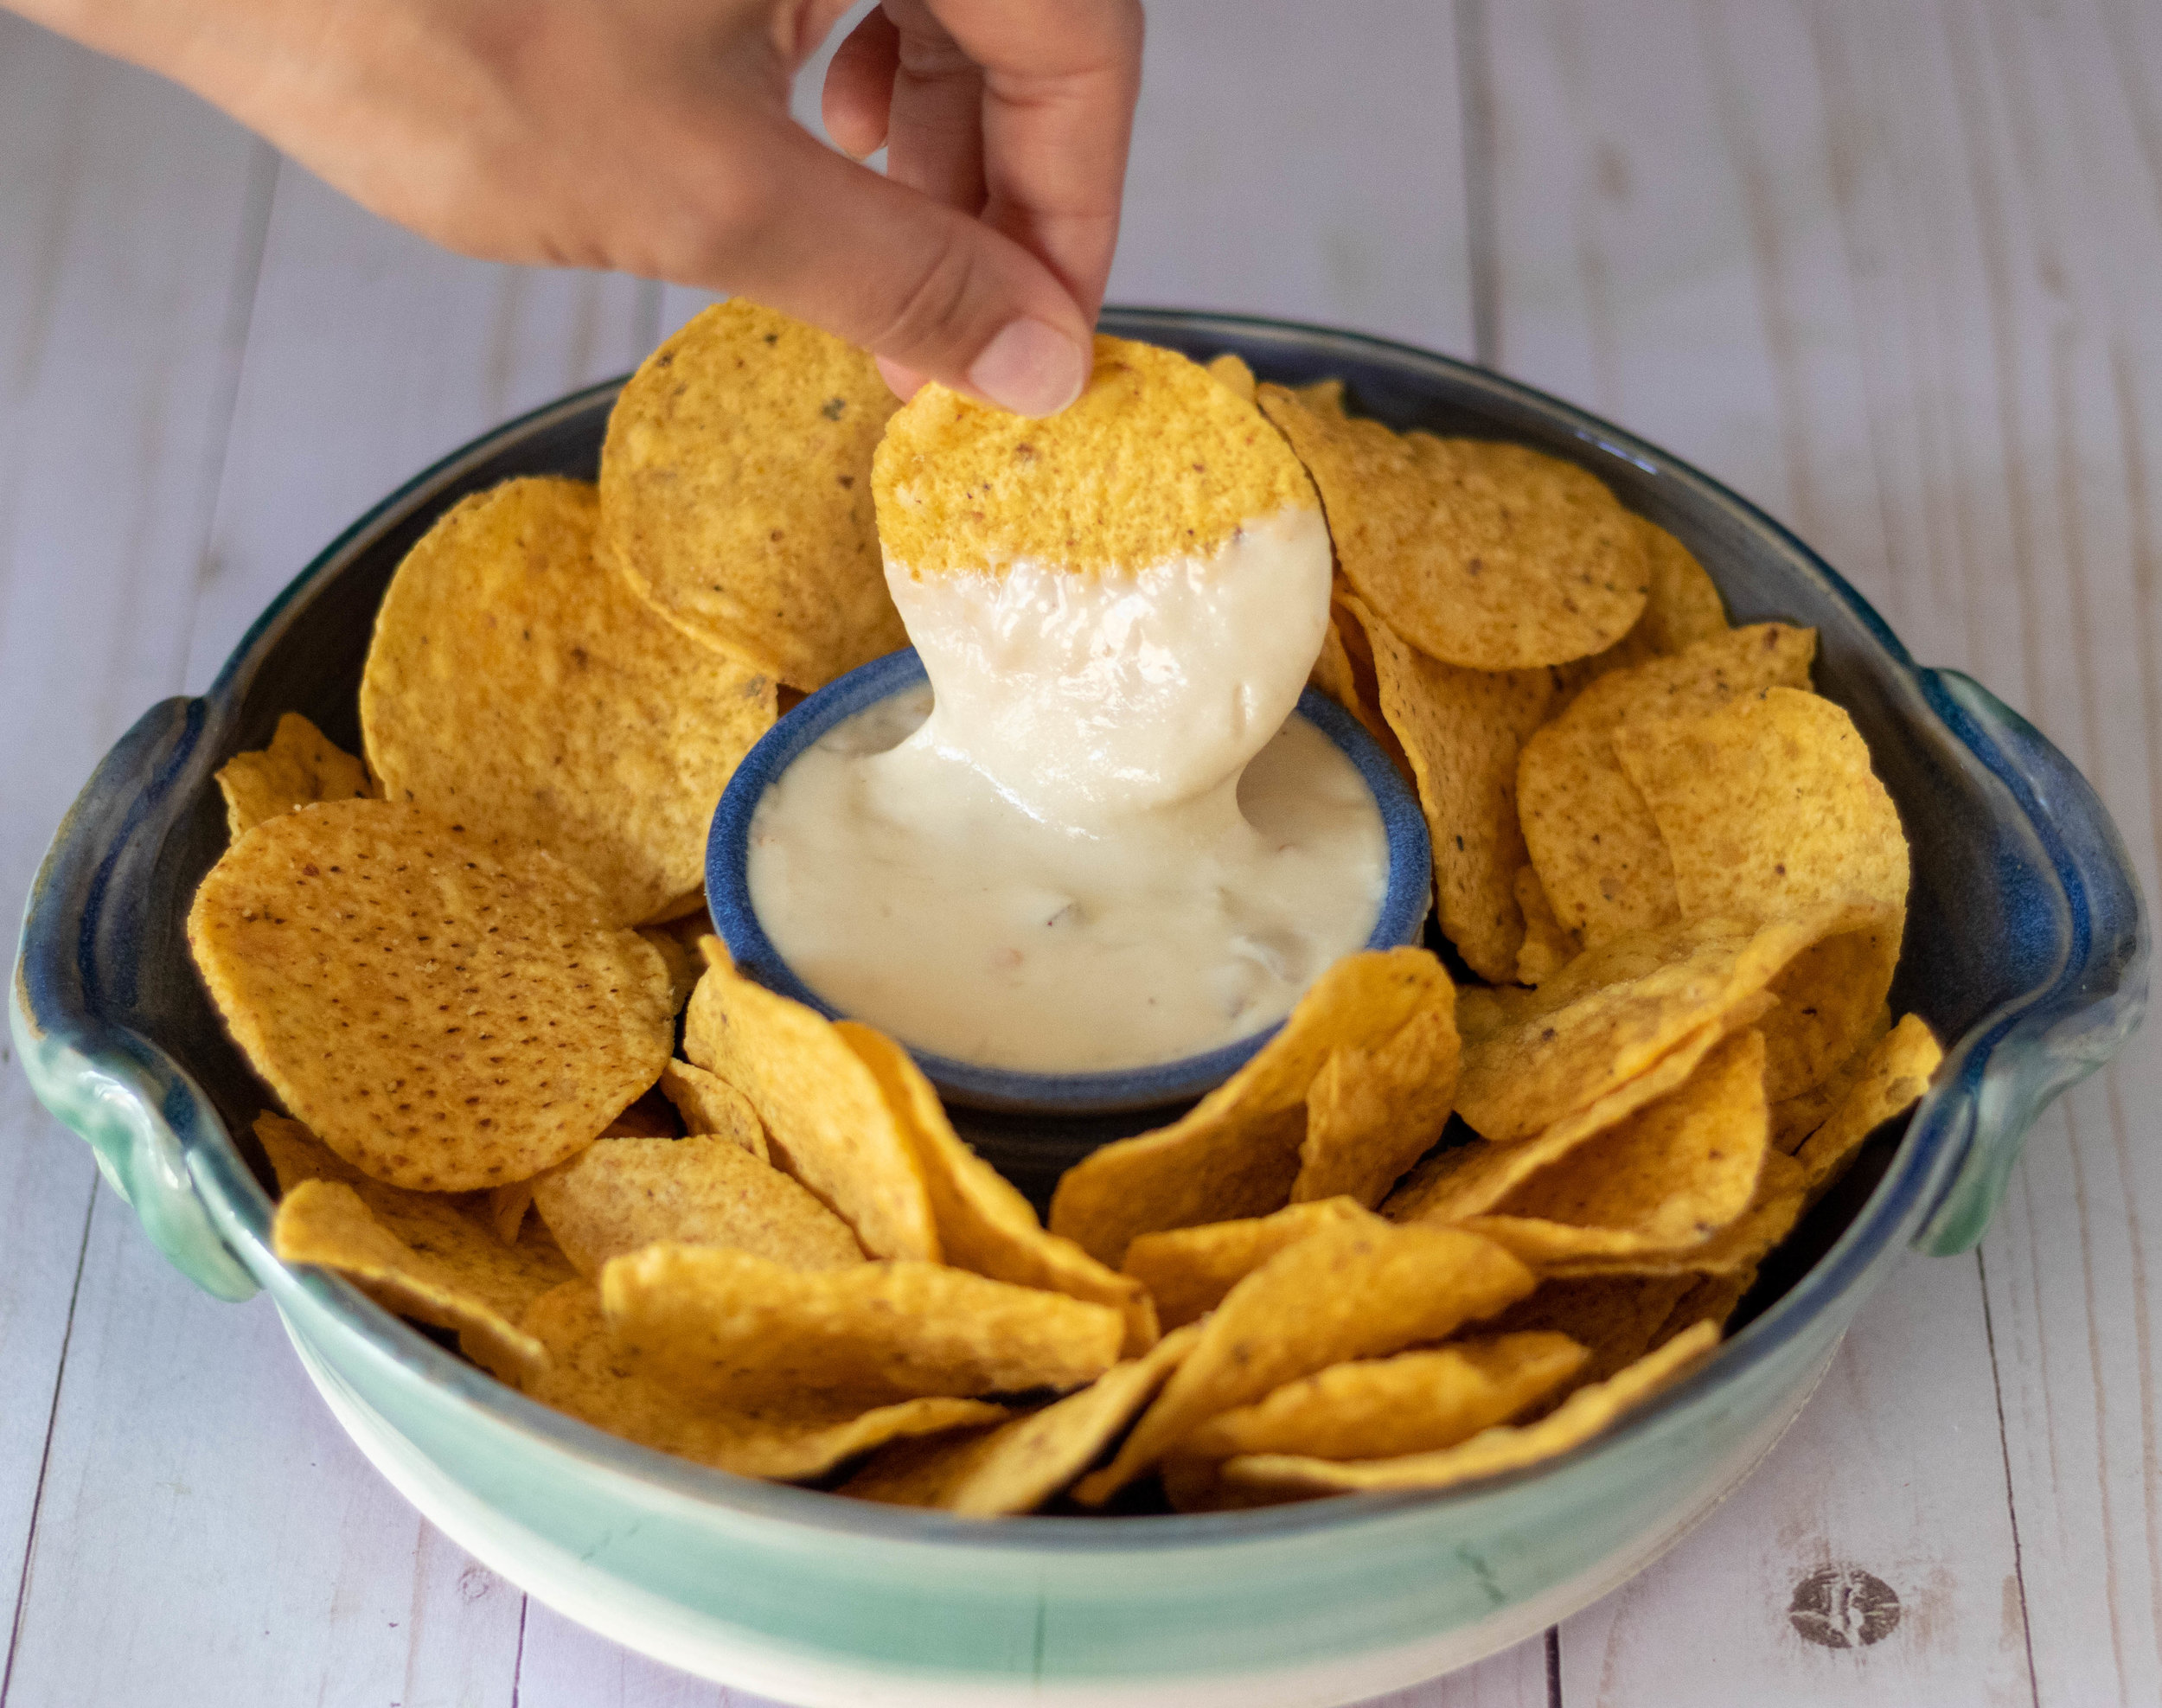 Dipping a yellow corn chip in a bowl of cashew queso